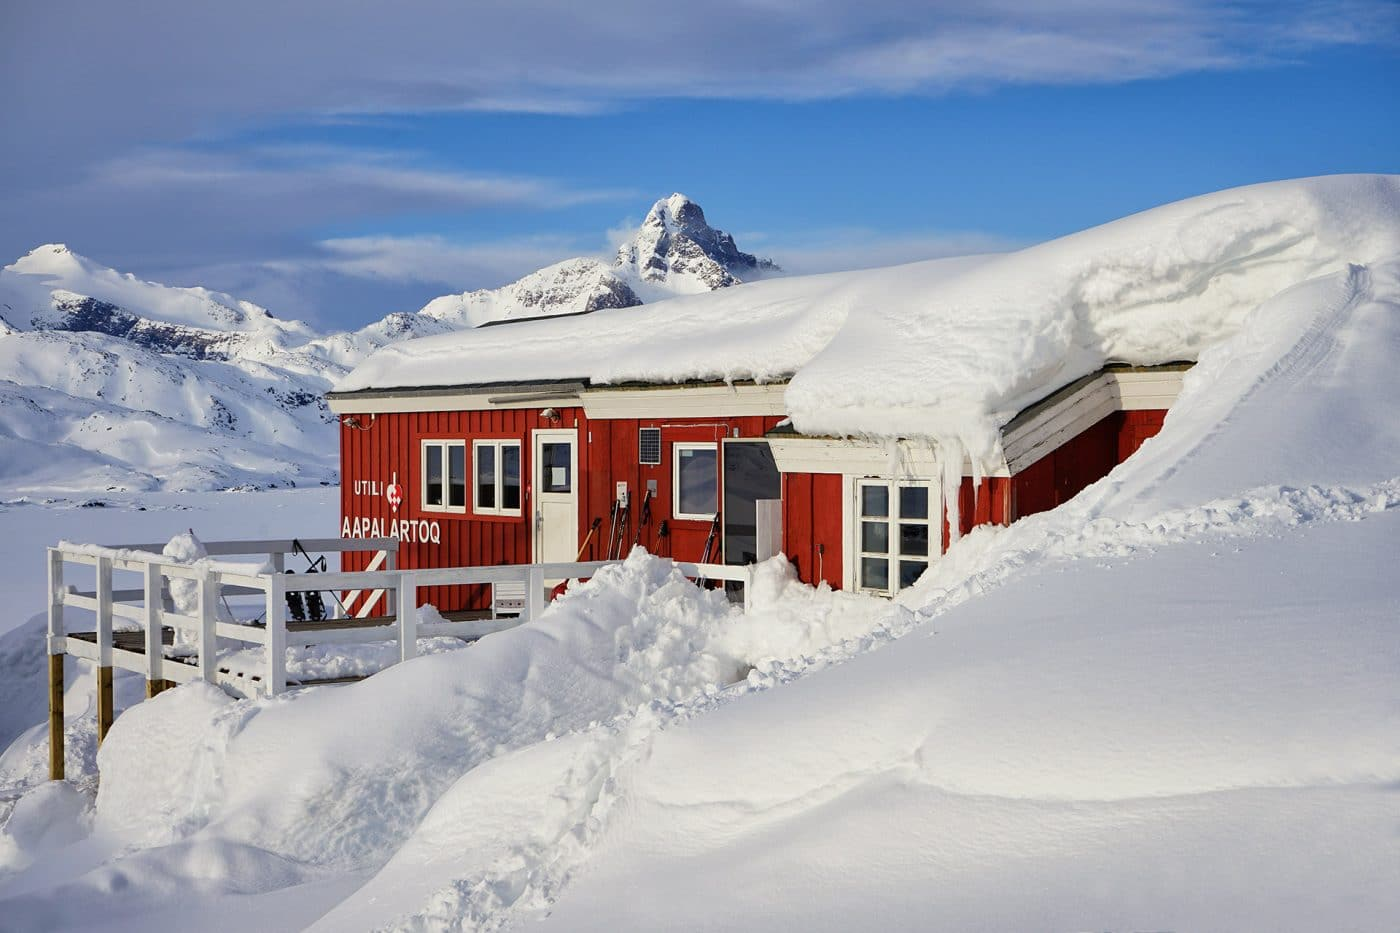 The Red House, East Greenland. Photo by Ulrike Fischer